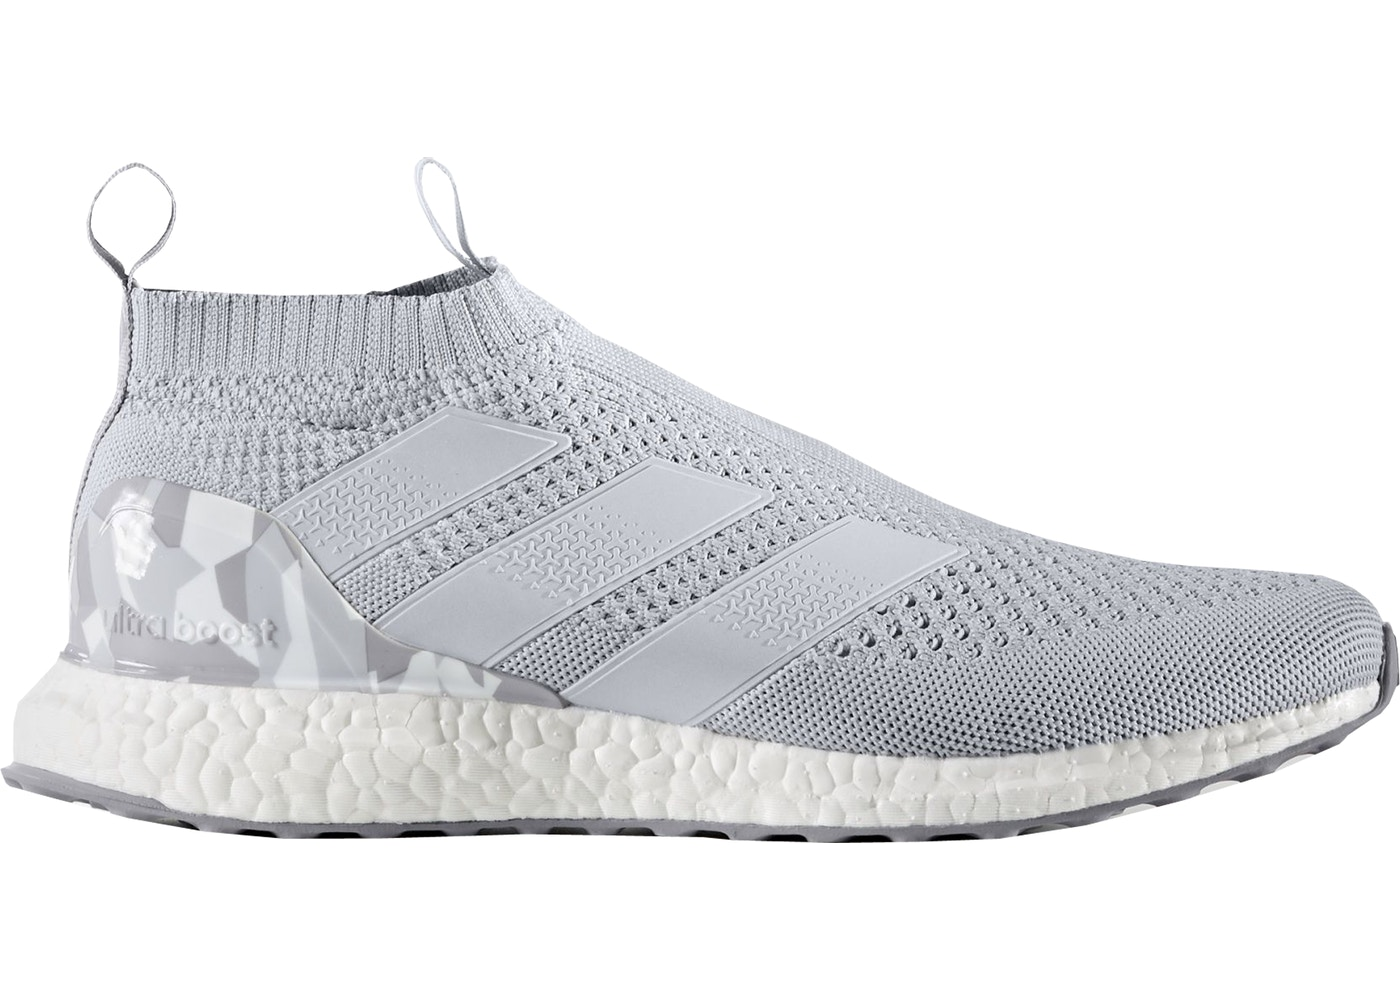 3e1571a6c68 adidas Ultra Boost Size 10 Shoes - Last Sale